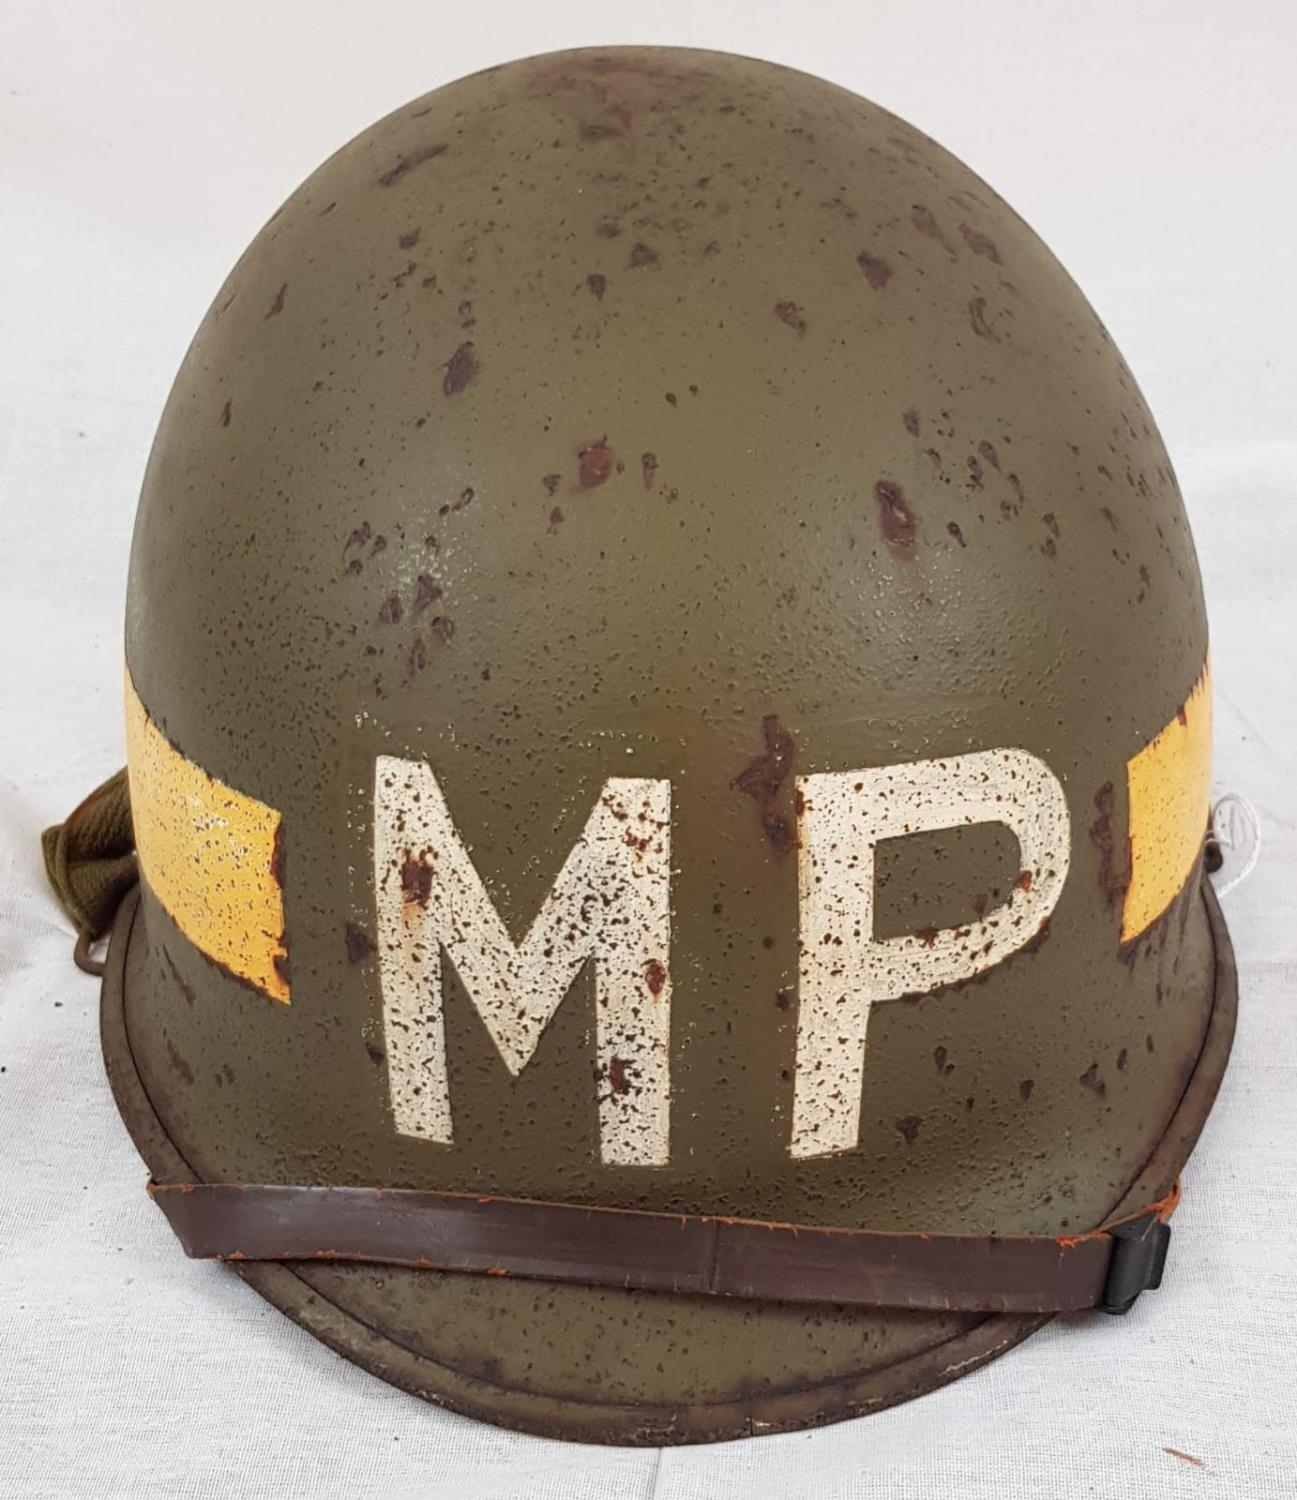 WW2 US M1 Military Police Front Seam Helmet & Liner. The Helmet was made by McCord with the batch